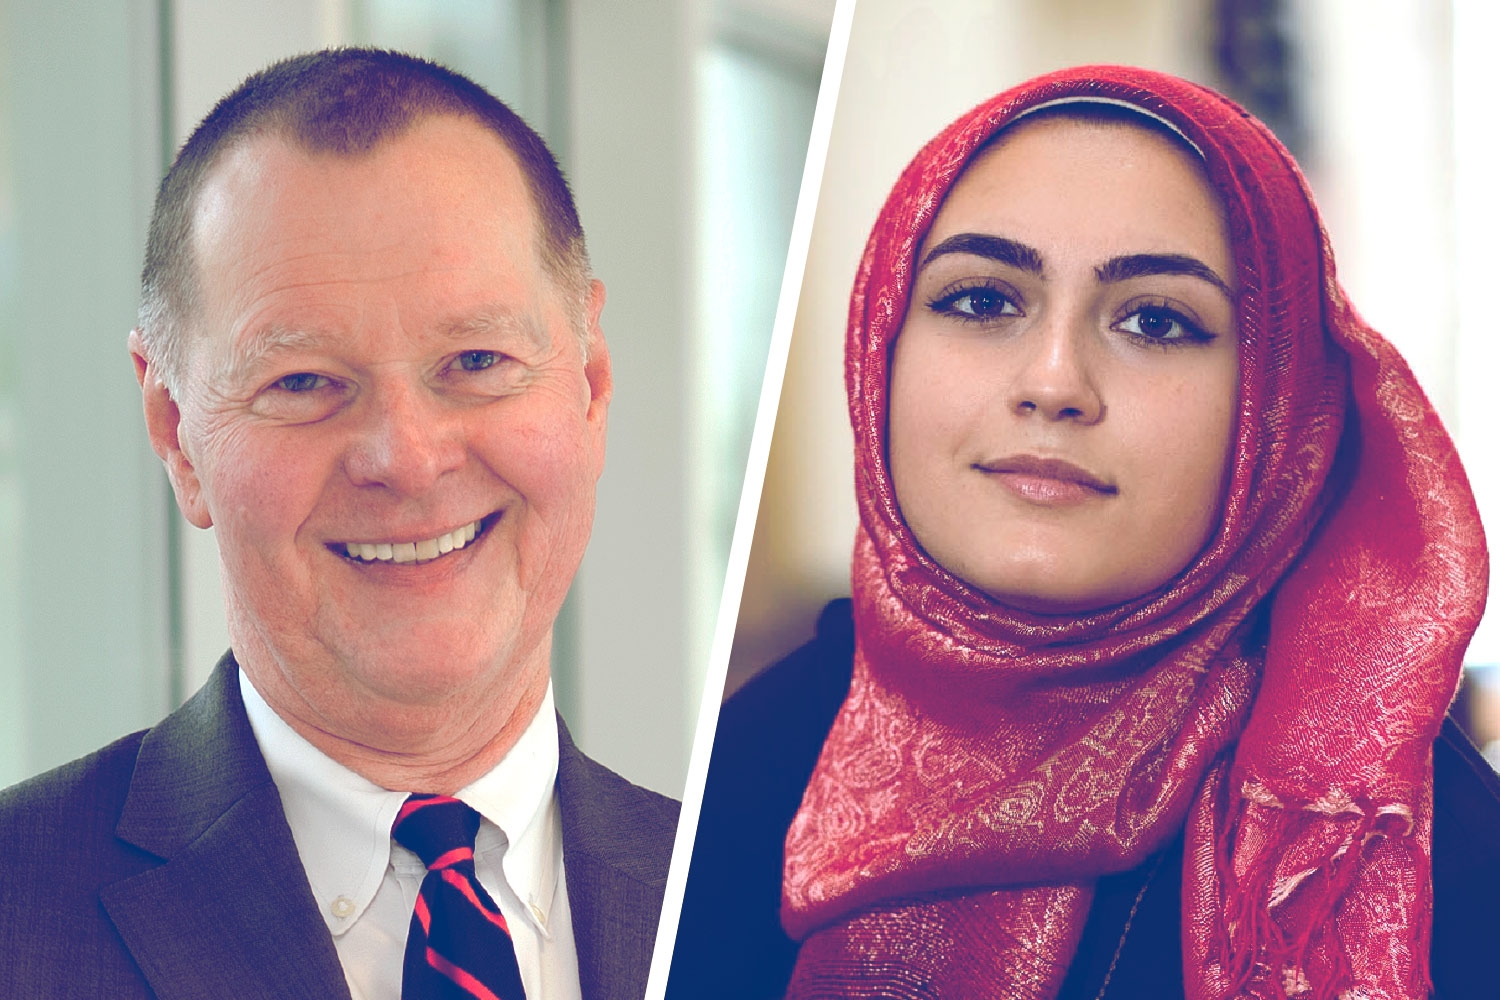 Change Agents With Compassion: Student, Medical Dean Awarded for Diversity